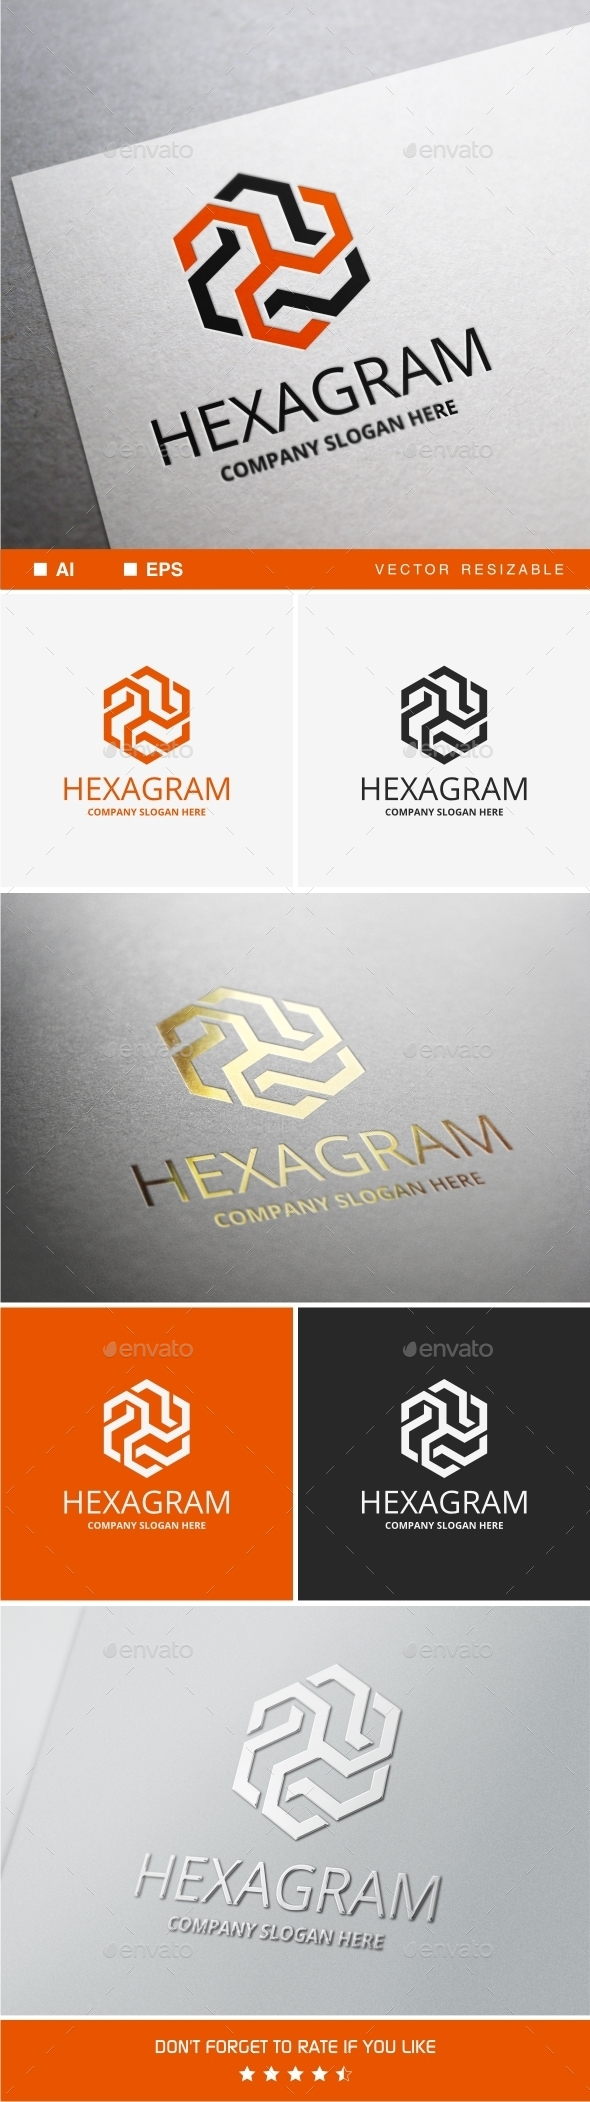 Hexagram Logo - Vector Abstract